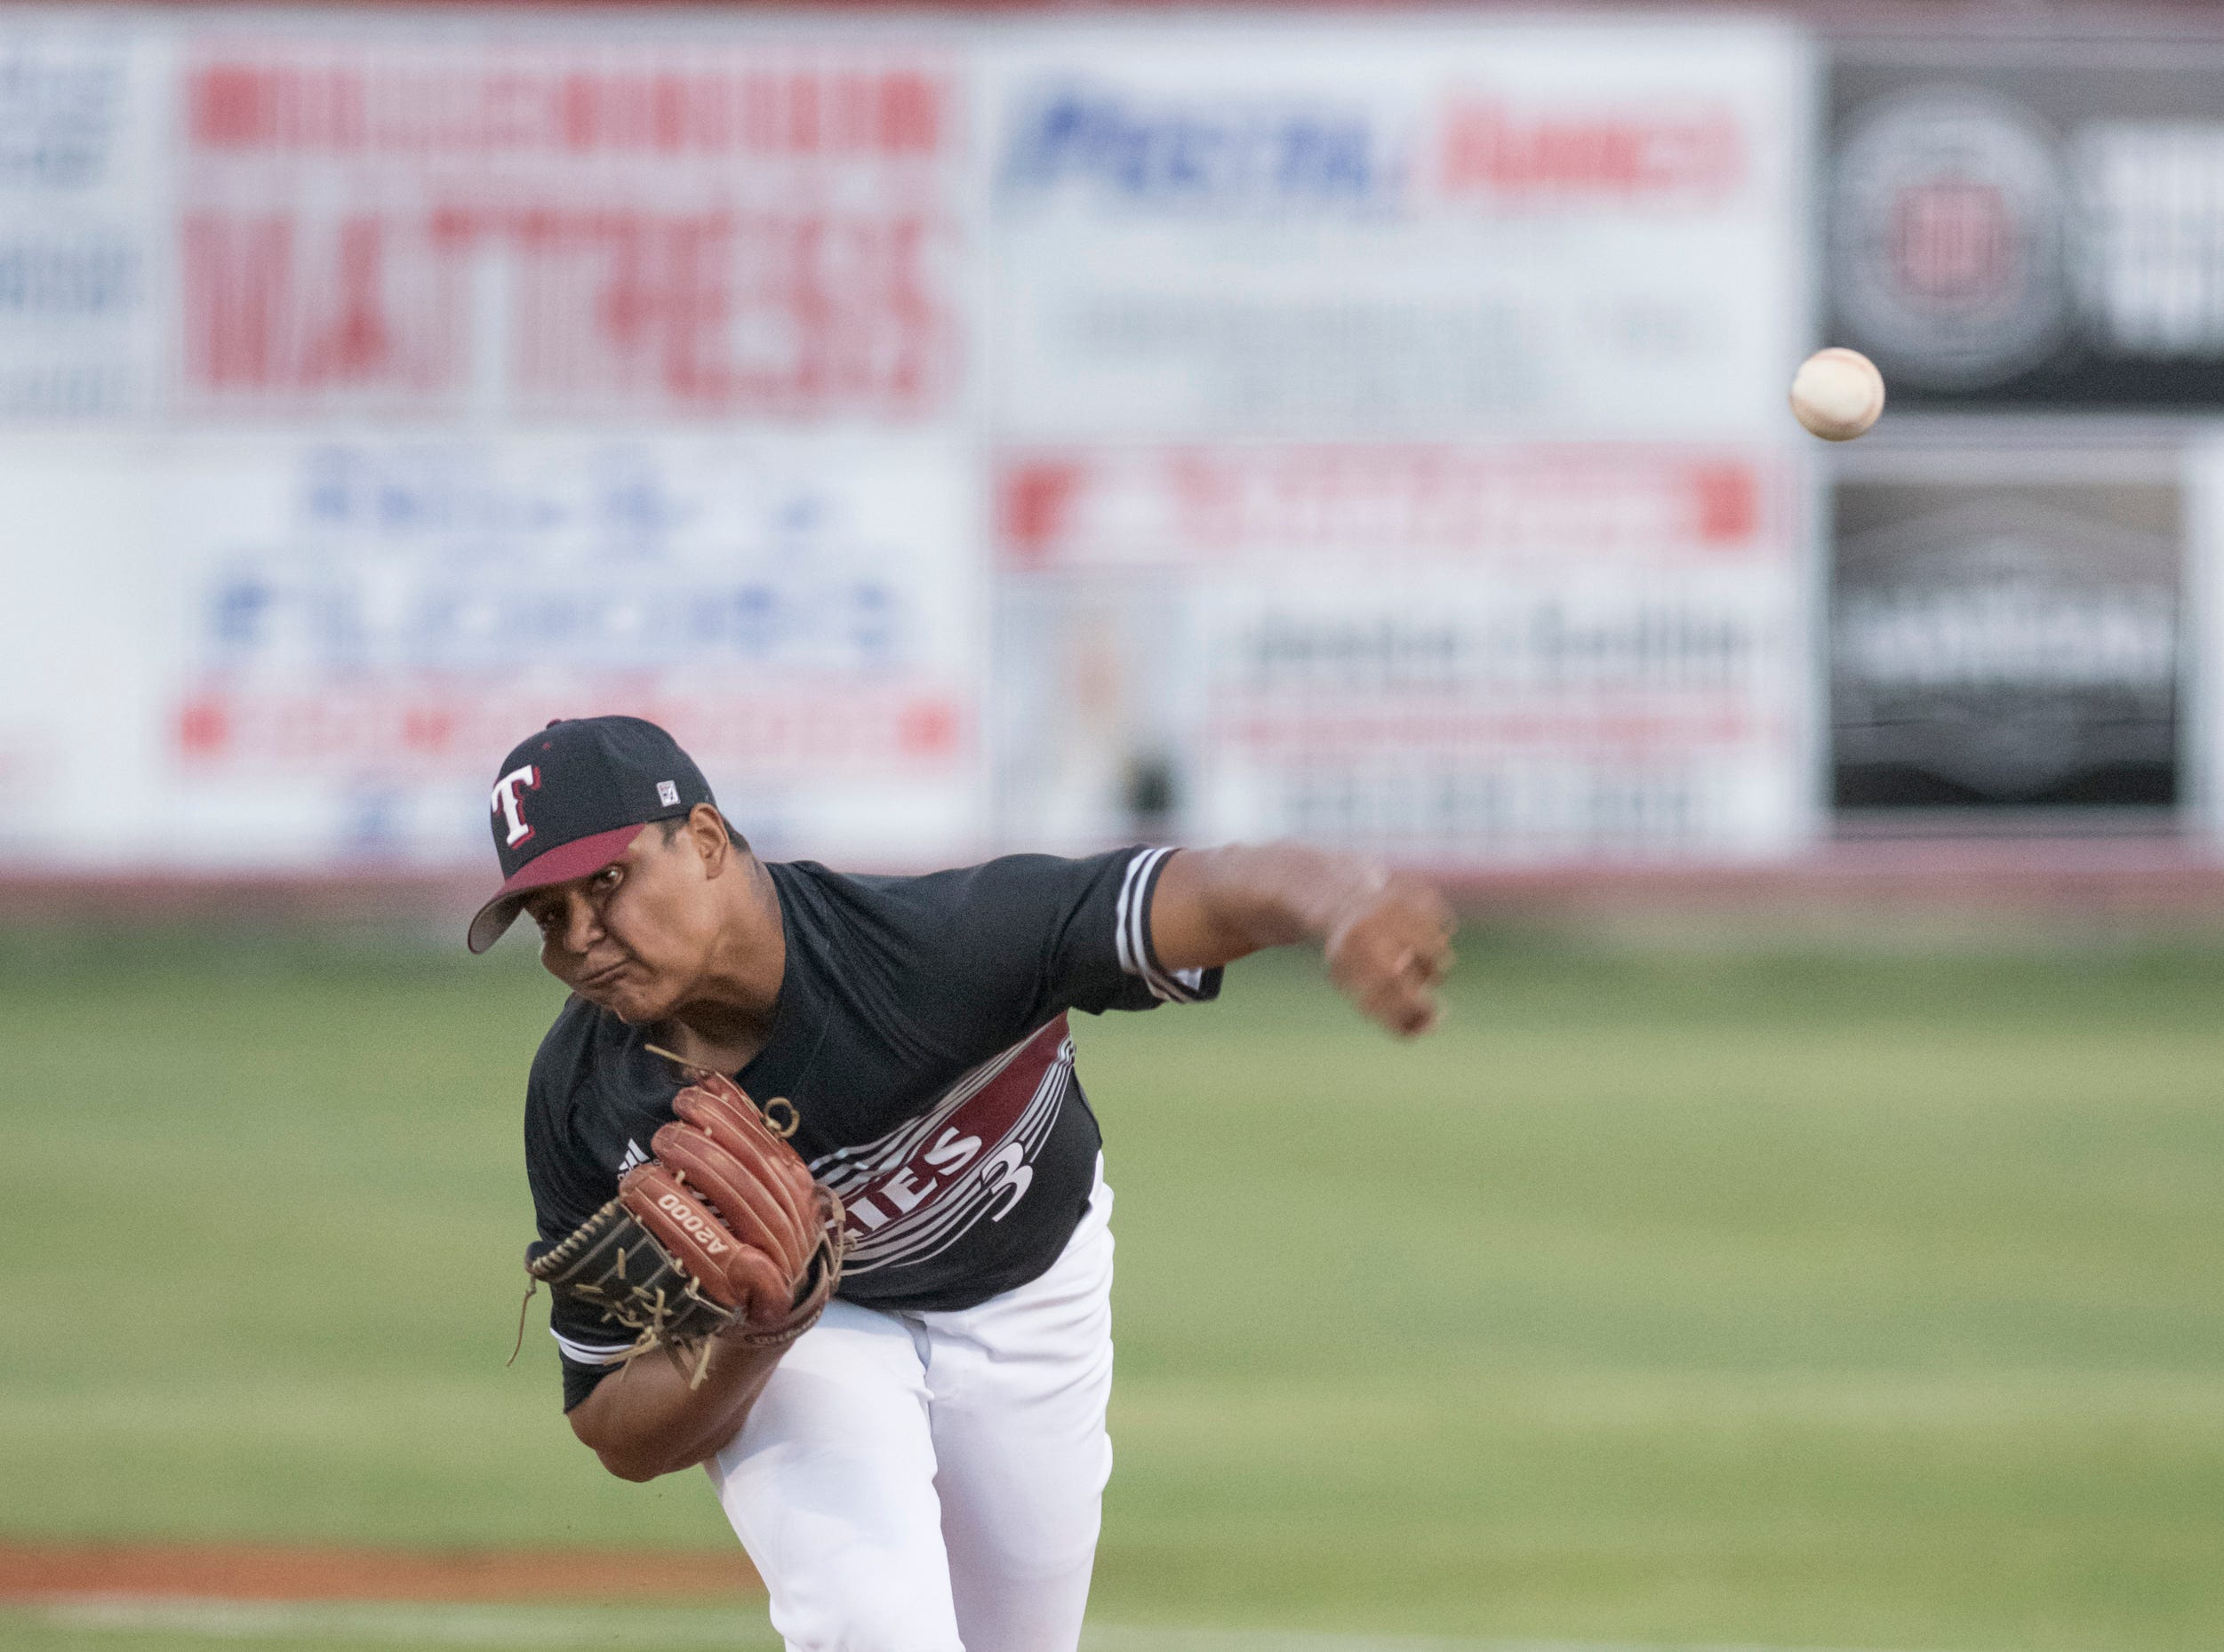 Starter Darrien McDowell (3) pitches during the Tate vs Pace baseball game at Pace High School on Thursday, April 11, 2019.